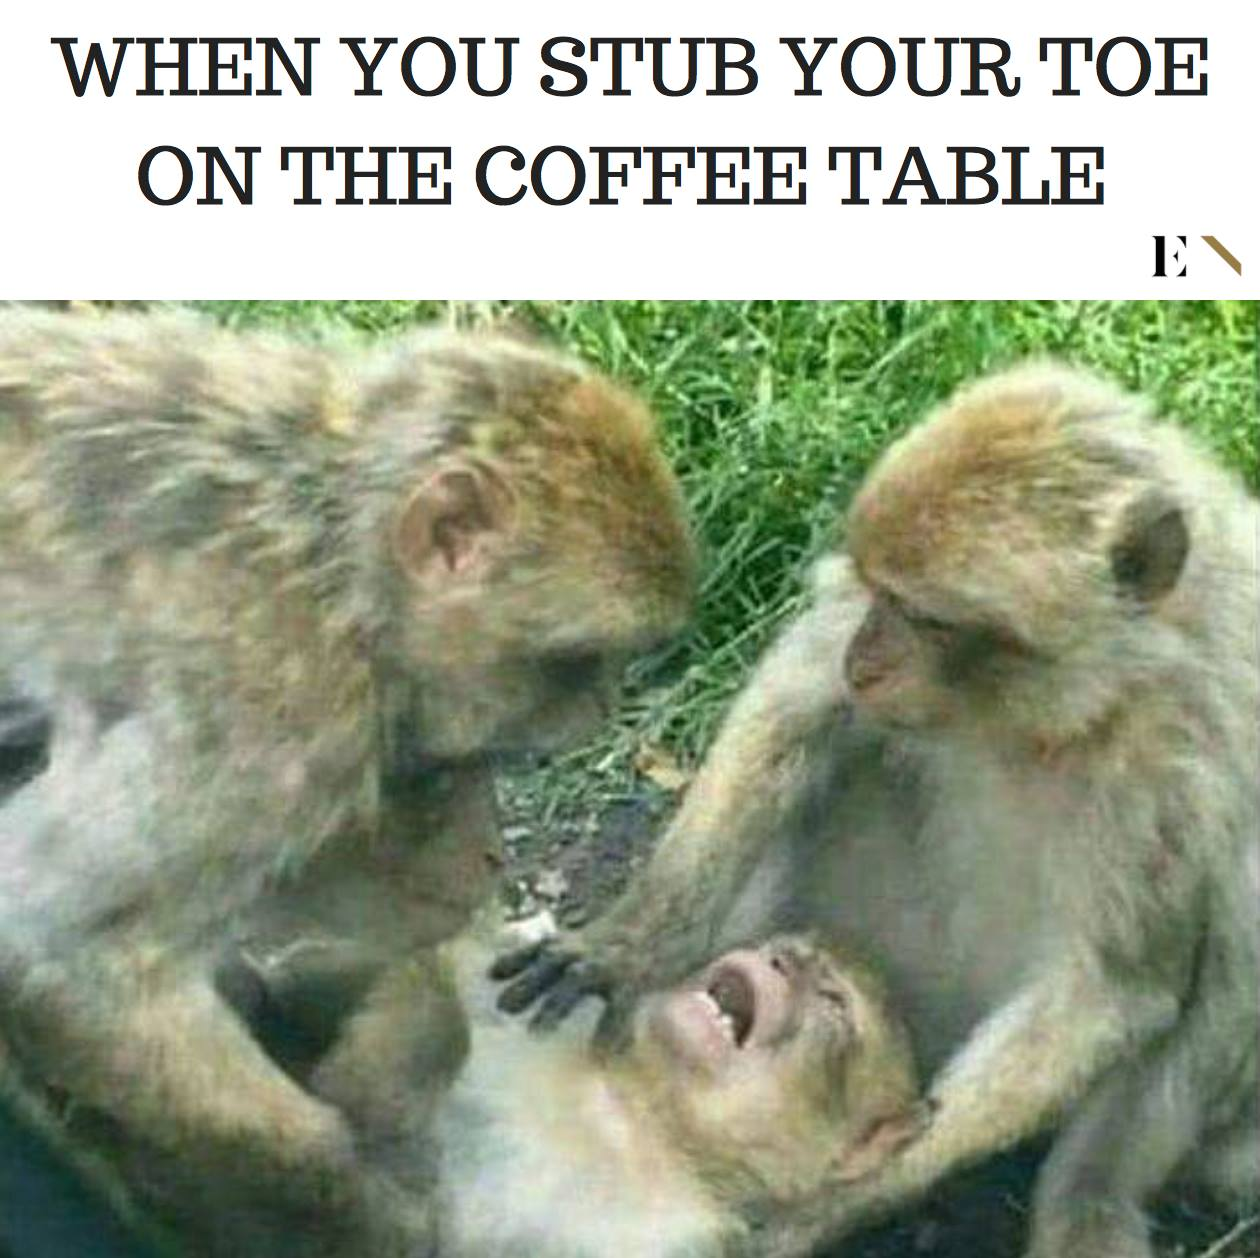 Funny Memes: 14 Funny Memes That Will Leave You On The Floor Laughing